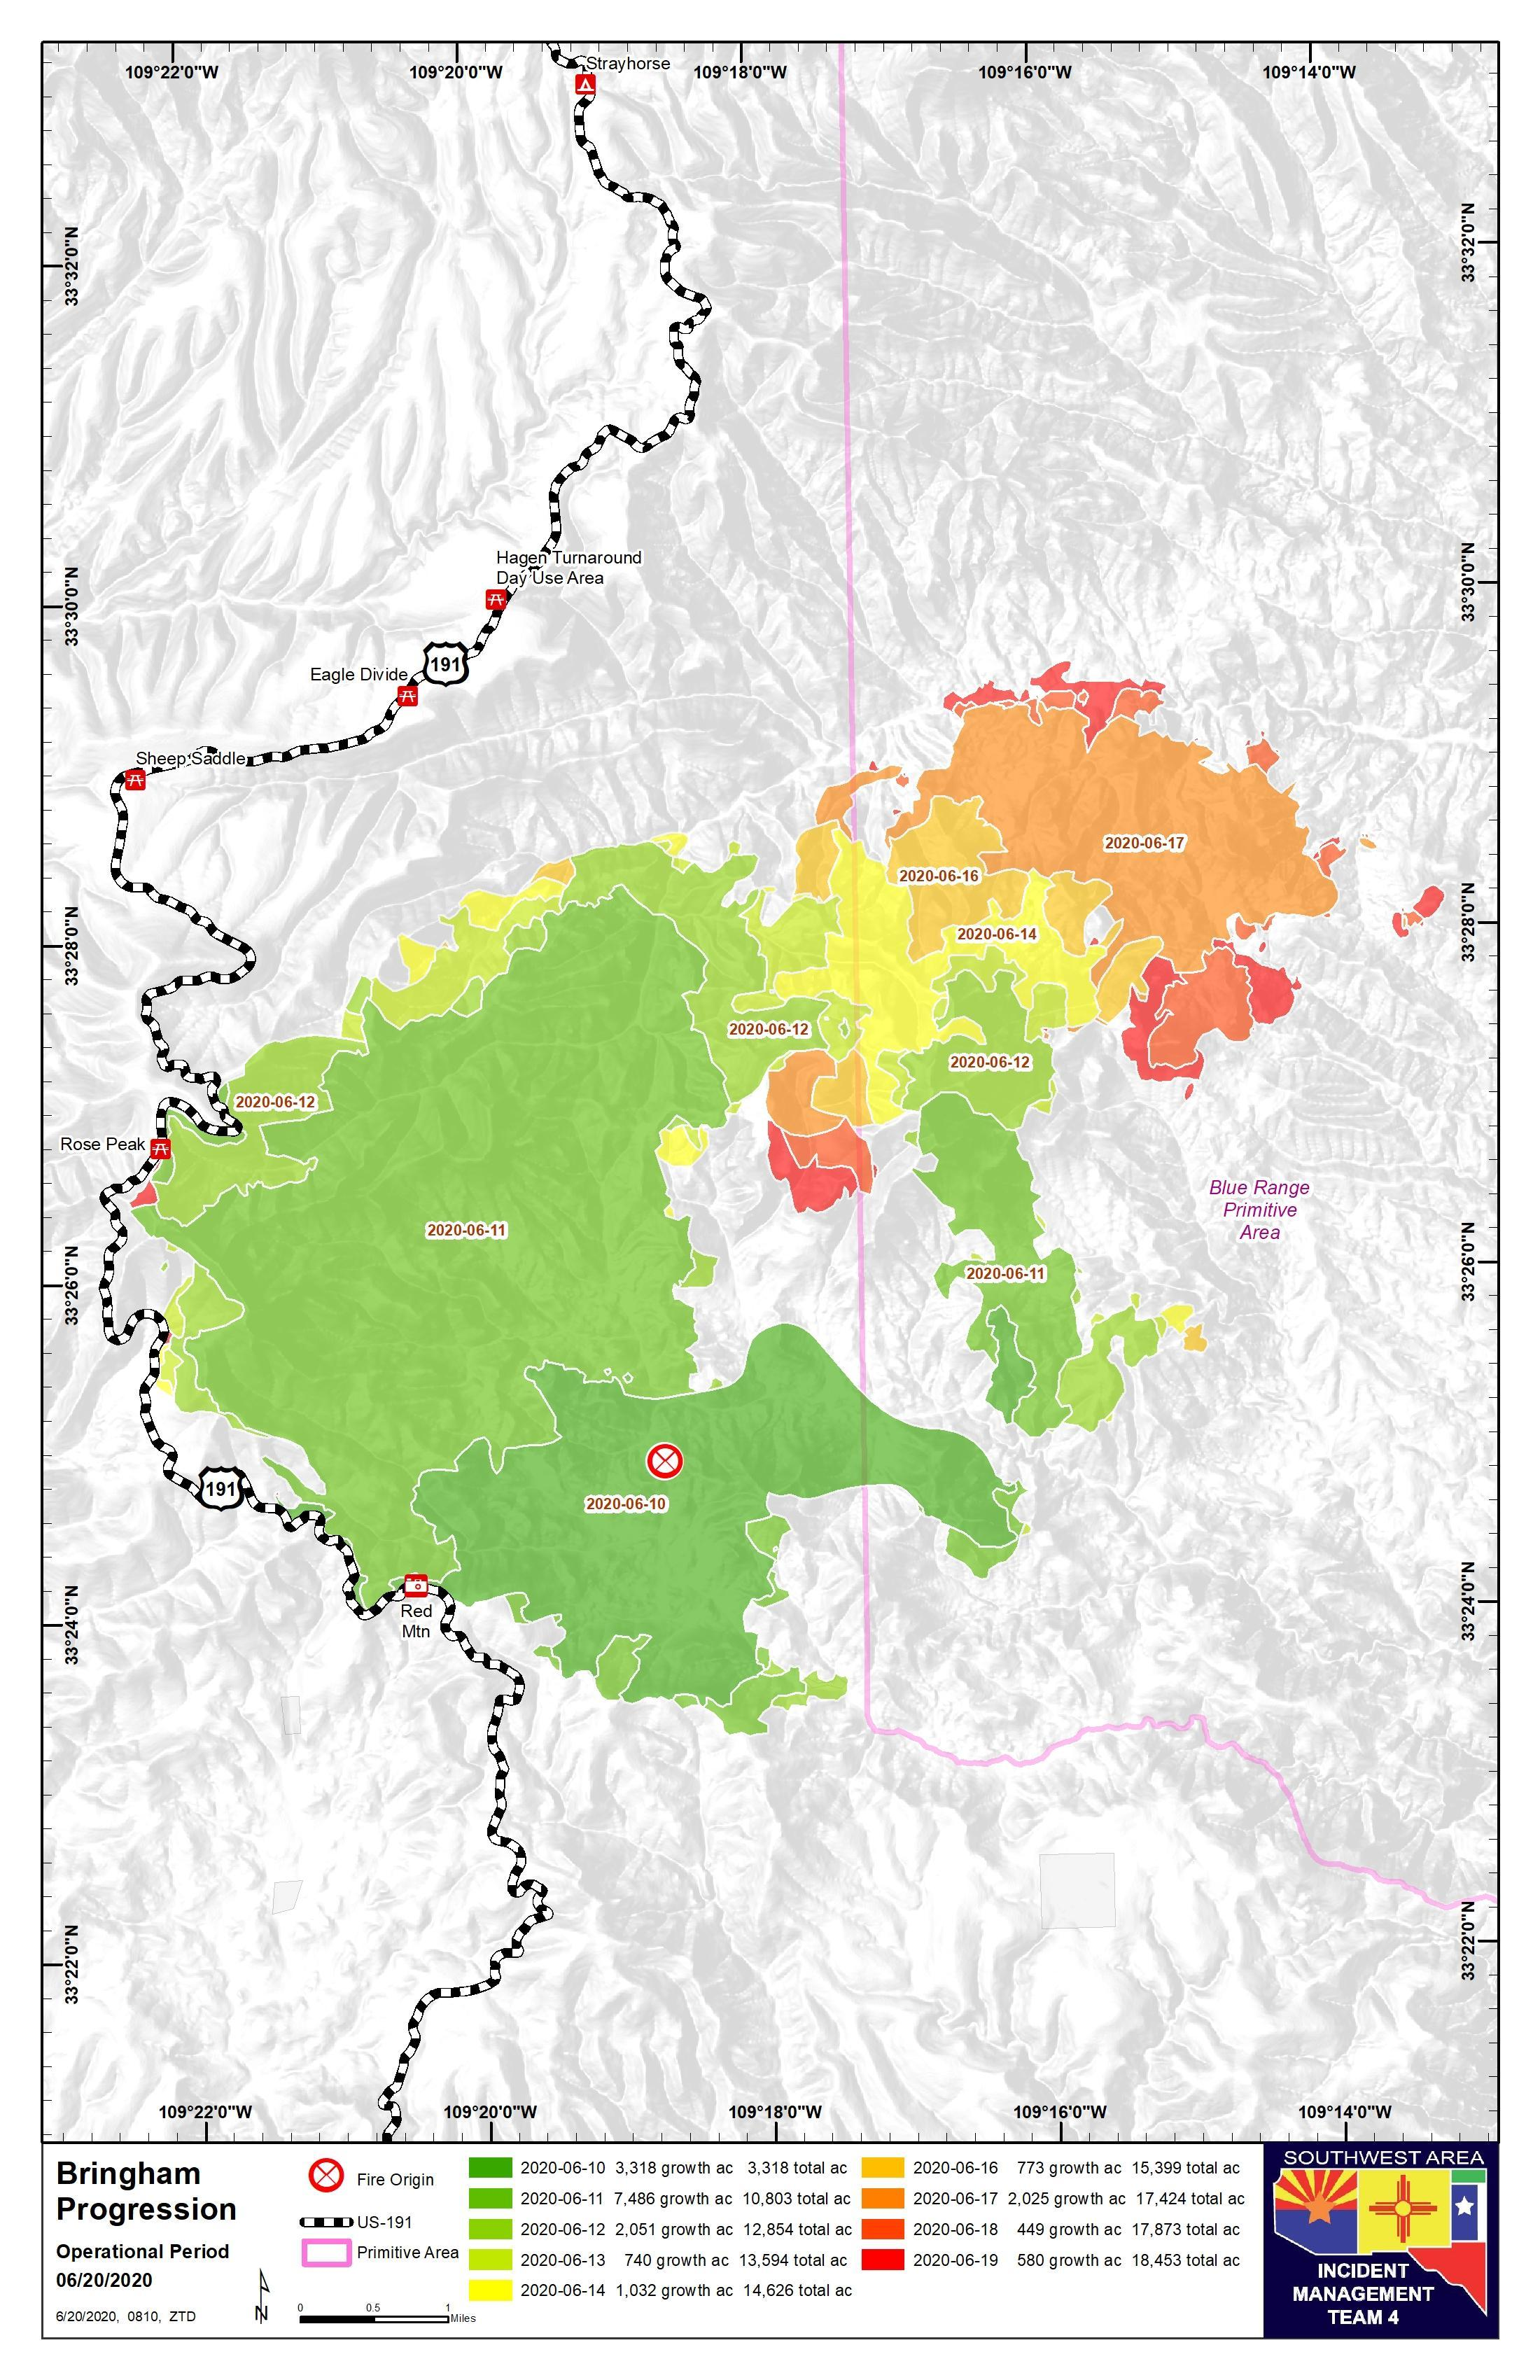 June 20 Bringham Fire Progression Map